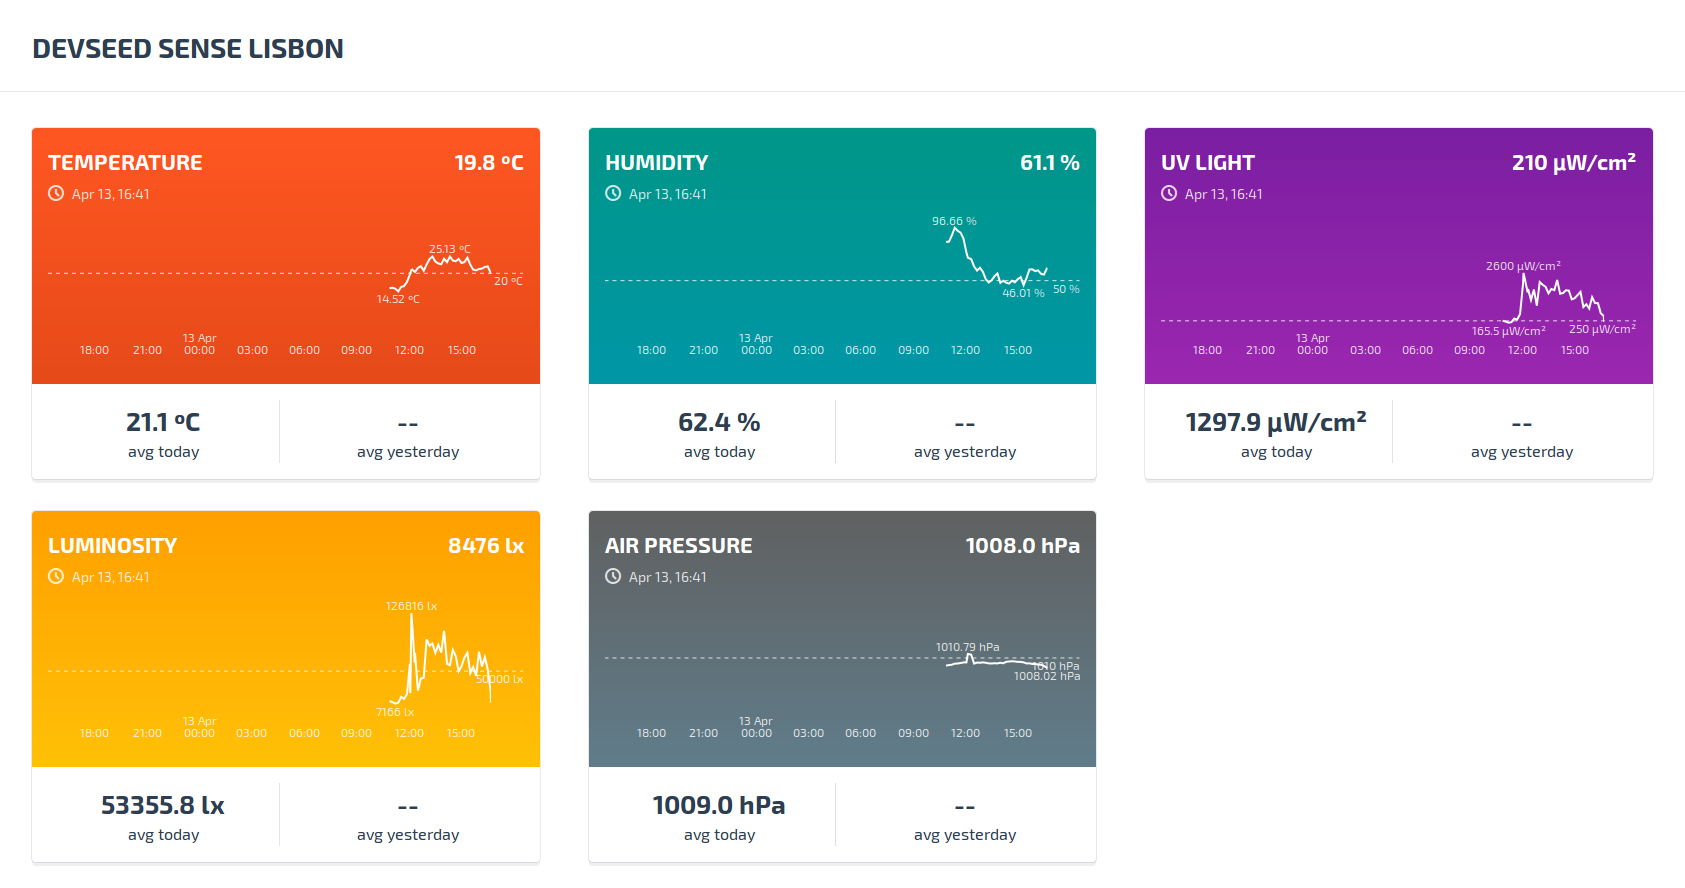 devseed-sense-dashboard.png